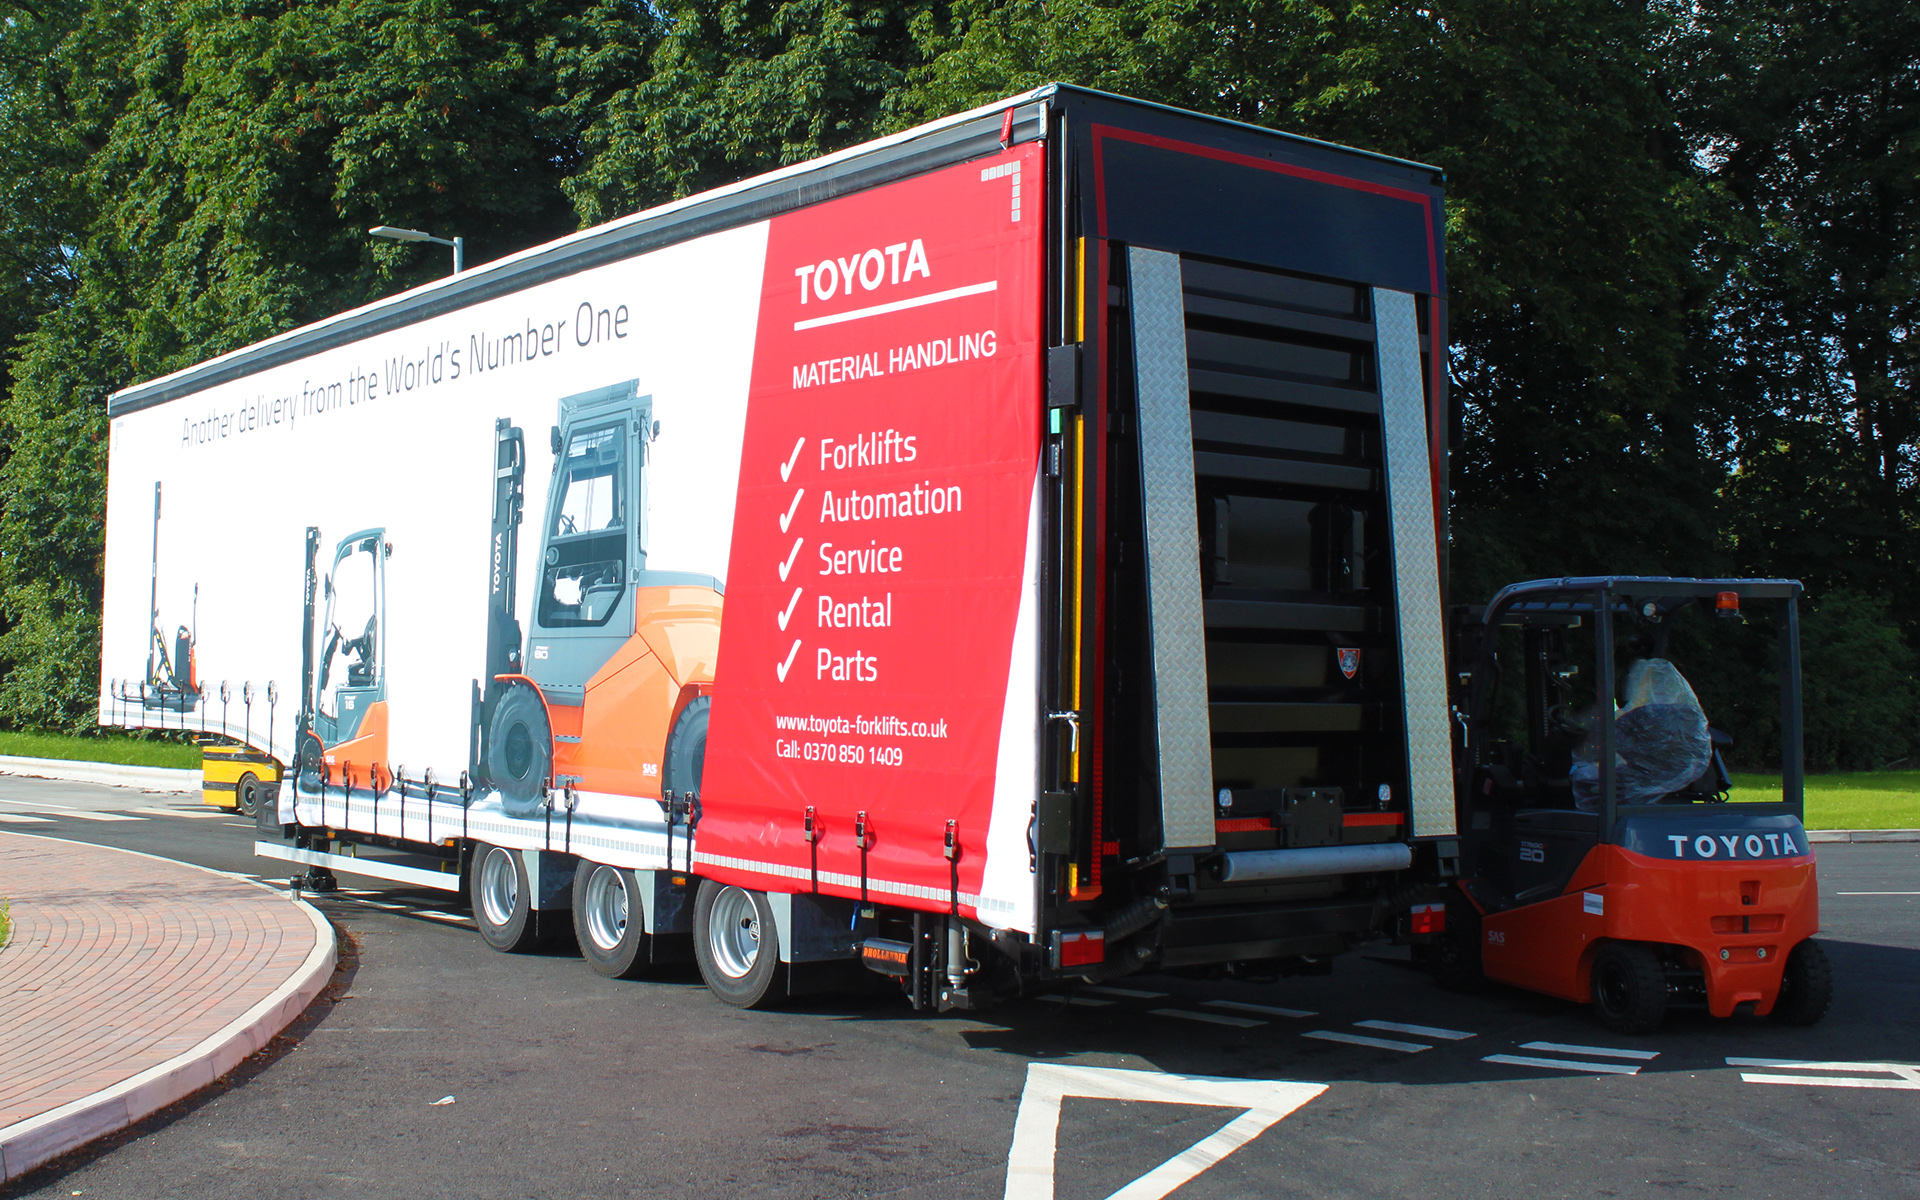 Products - specialist flatbed gas pallet bespoke manufacturer - XPO Logistics fork lift carrier Toyota